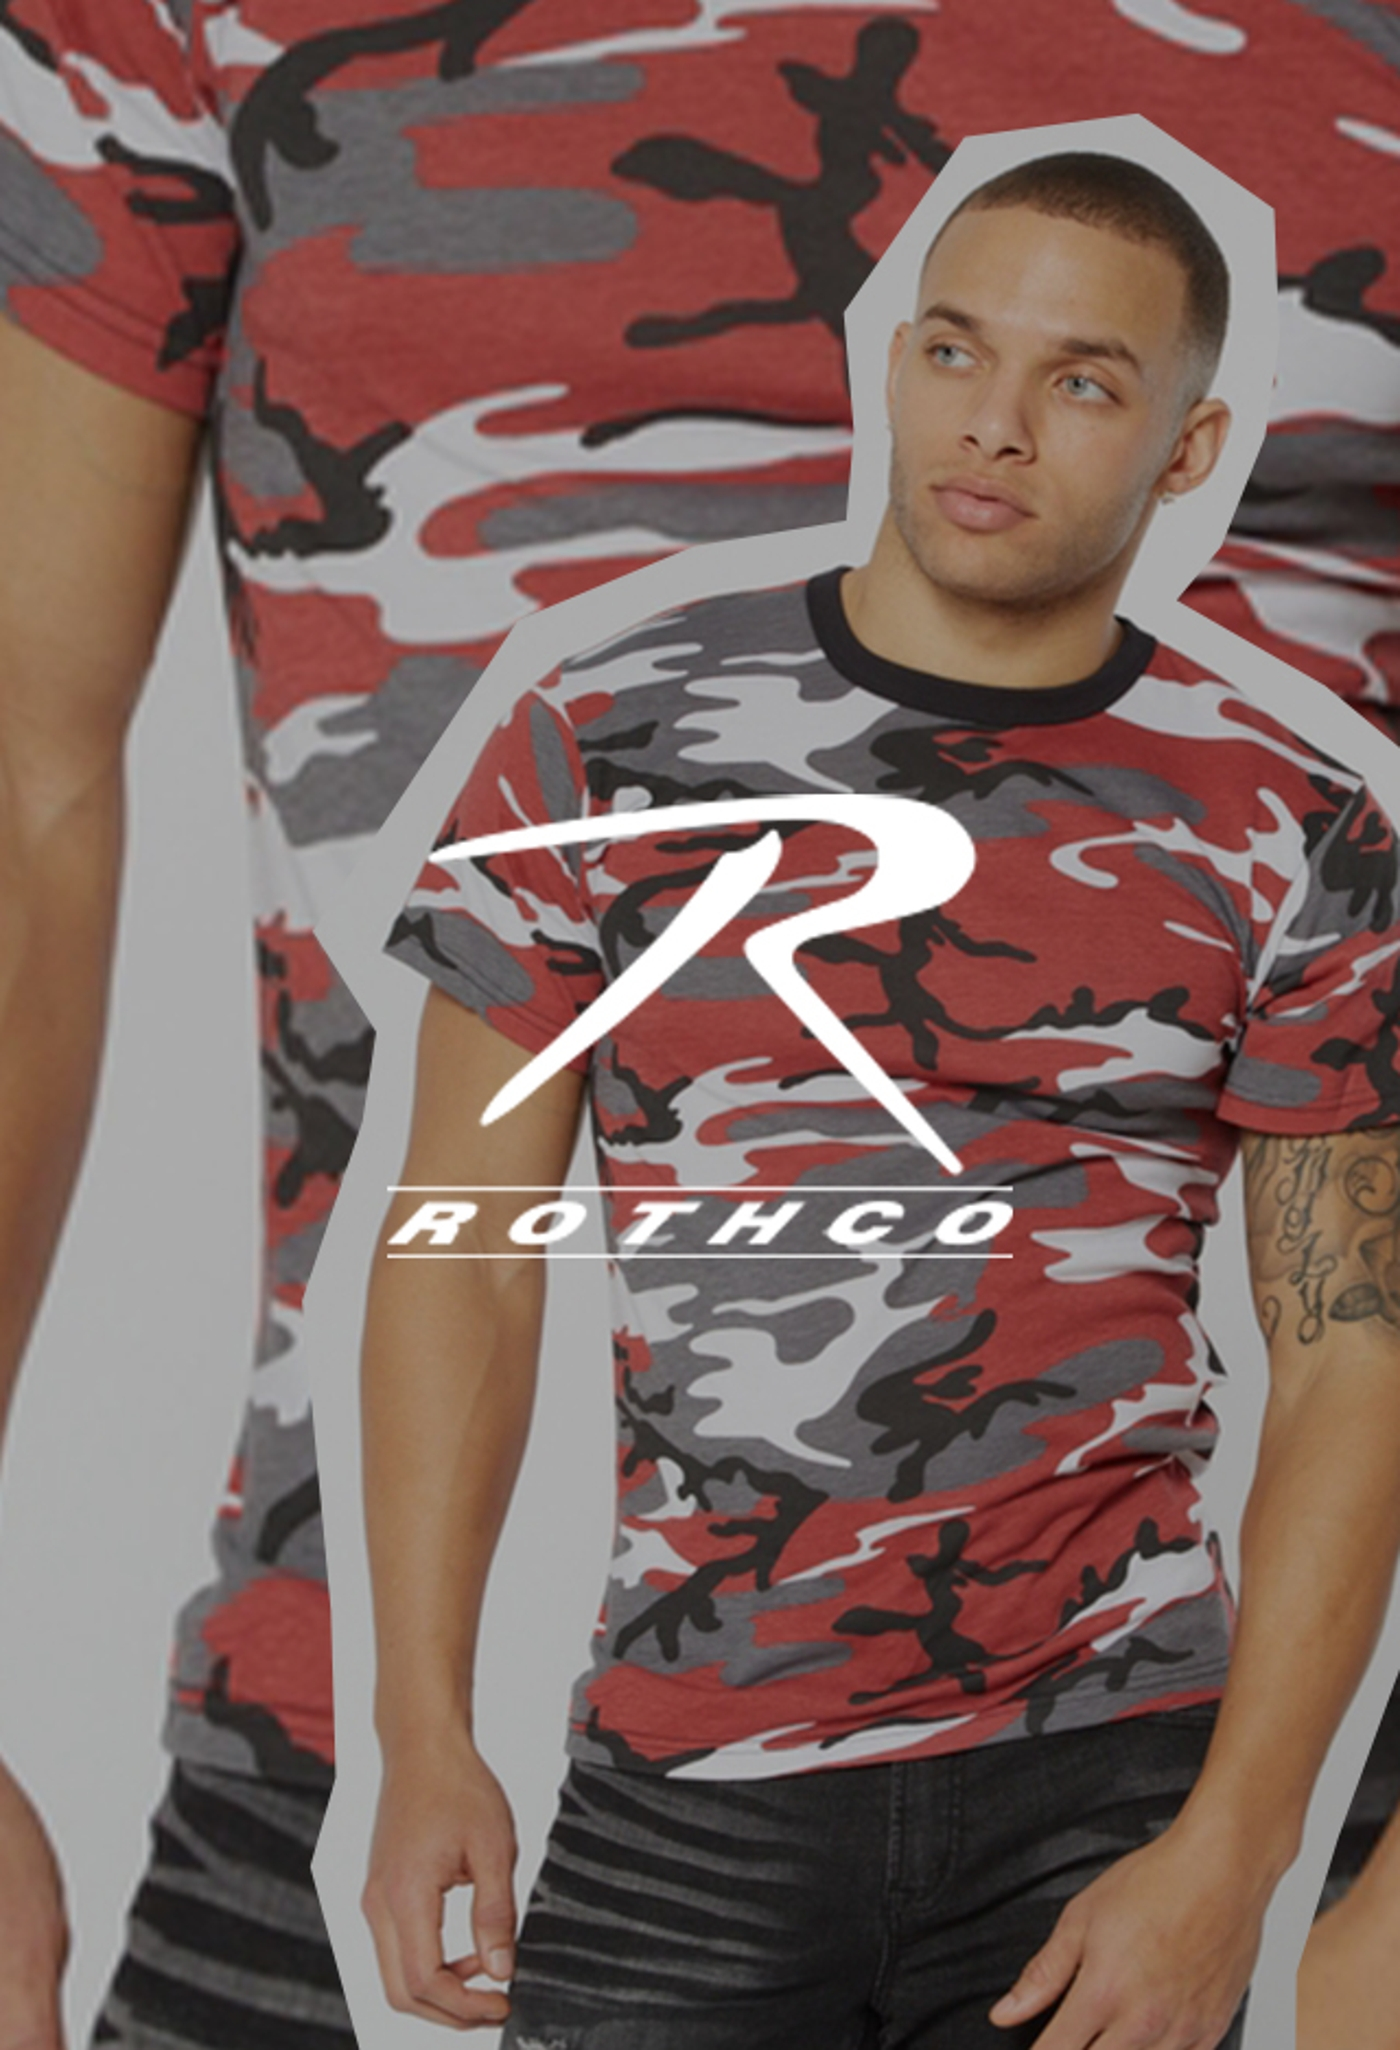 Clothing by Rothco